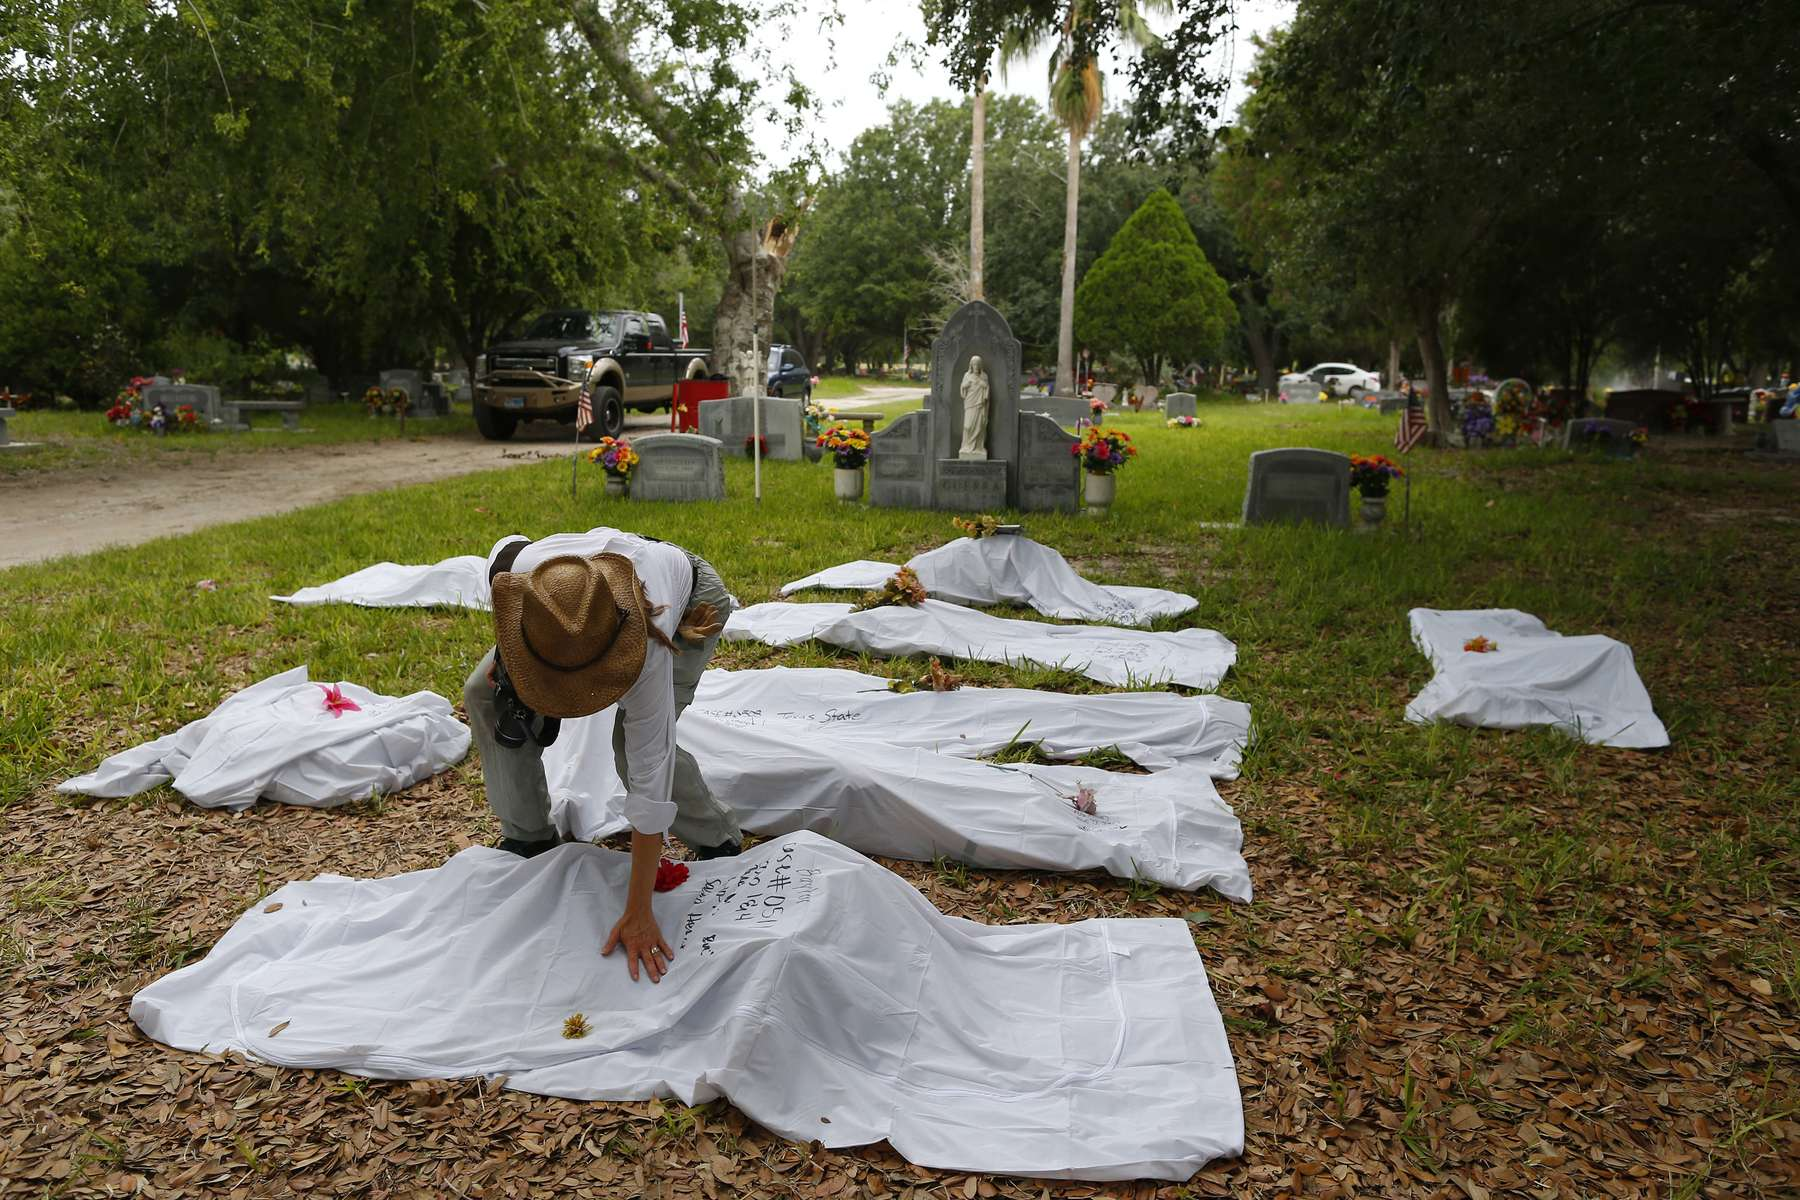 Falfurrias, Texas - Lori E. Baker, Ph.D. places her hand on one of the eight body bags that members of the Baylor forensics team exhumed from a pauper's grave in Falfurrias, Texas June 10, 2014.